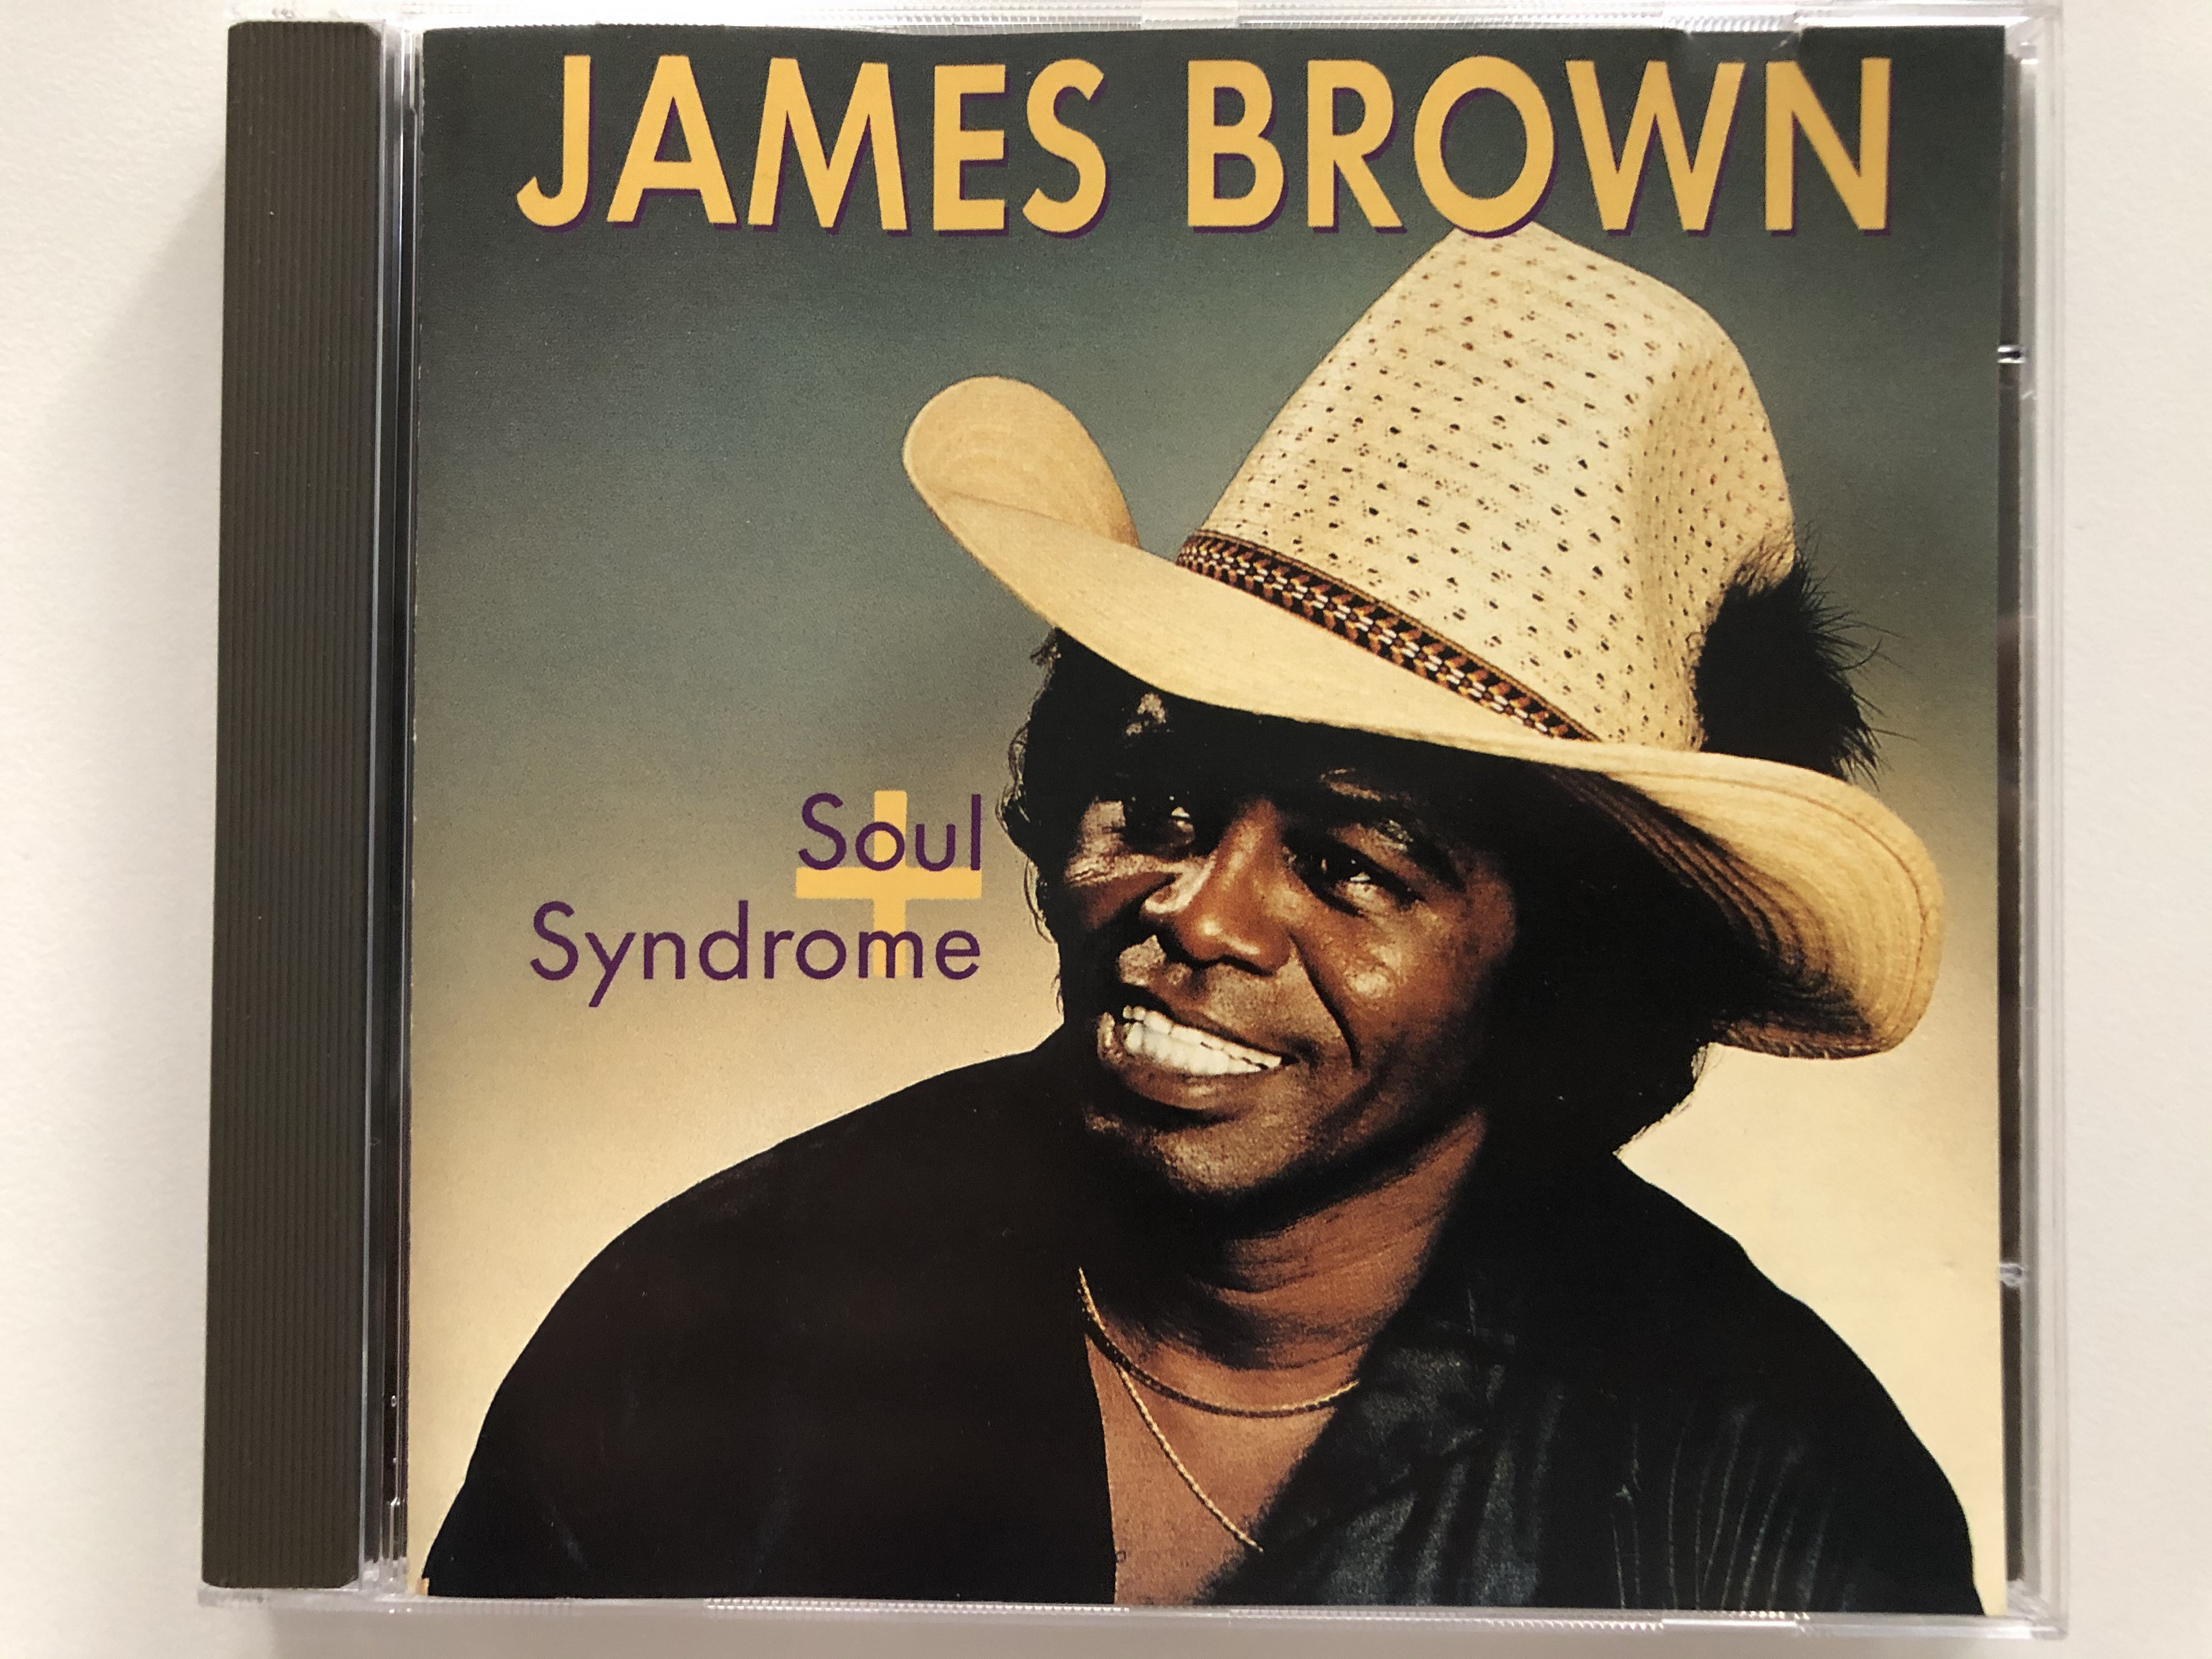 james-brown-soul-syndrome-t.k.-records-audio-cd-1991-cdp-7977022-1-.jpg